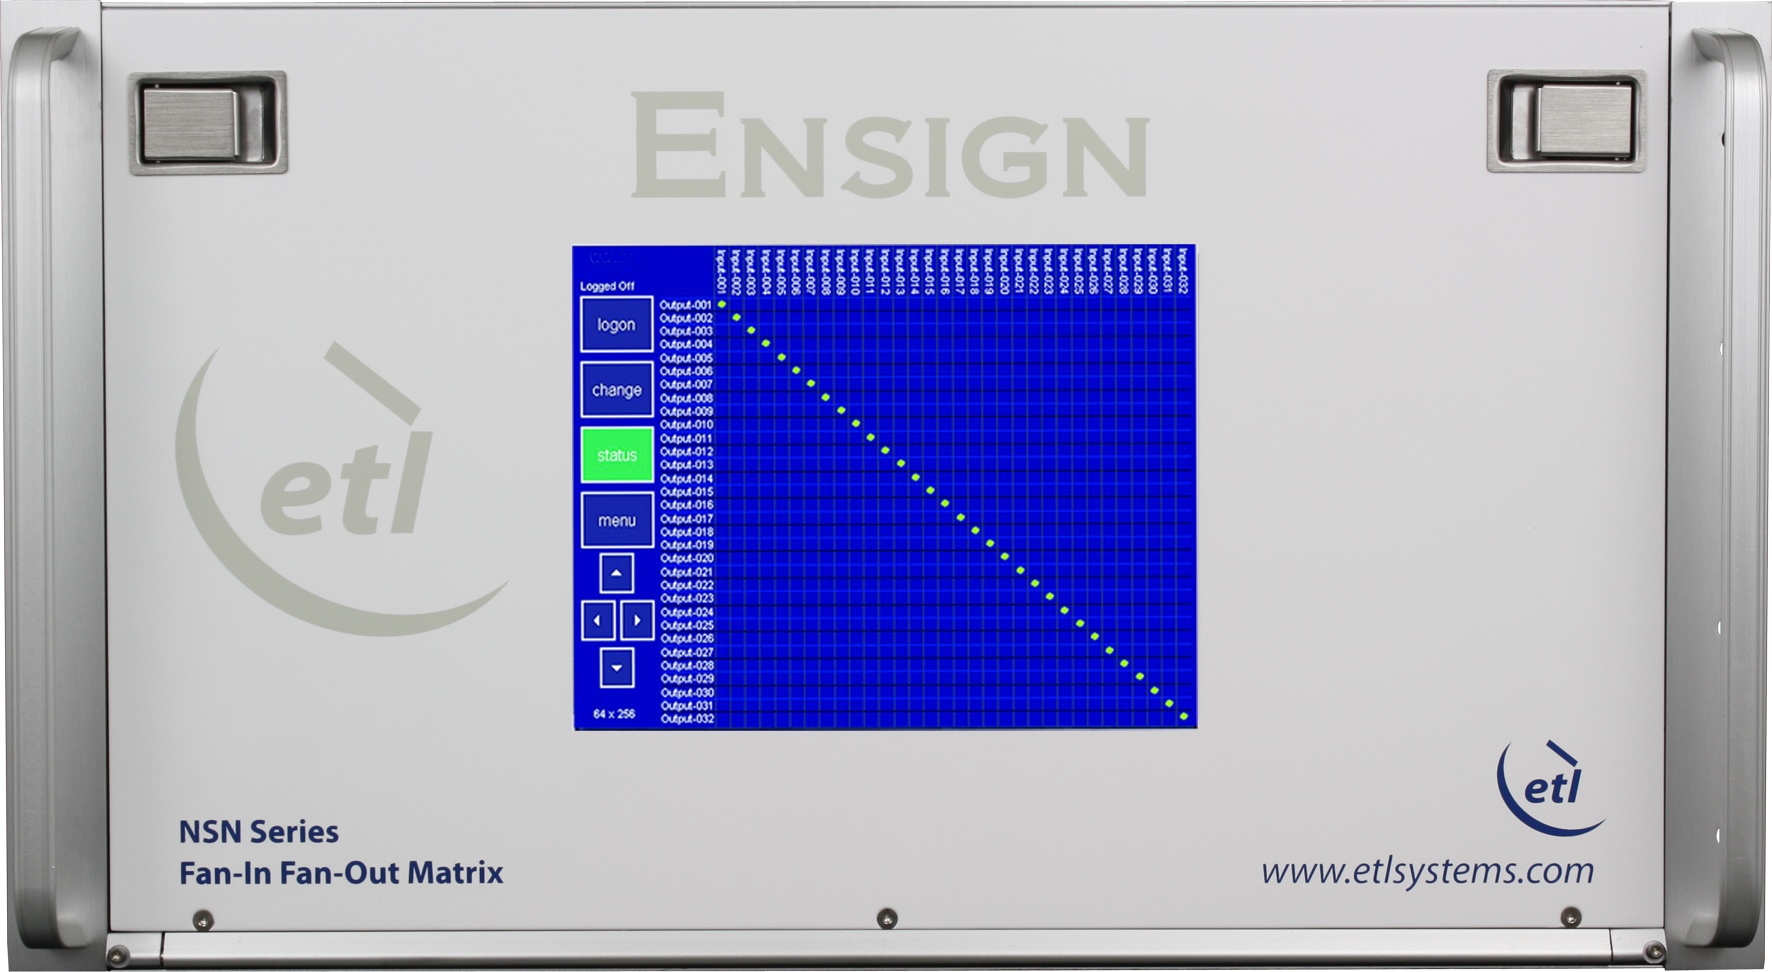 ENSIGN 32x32 Fan-in Fan-out (FIFO) Extended L-band Matrix with variable gain - Model NSN-15-xxxx